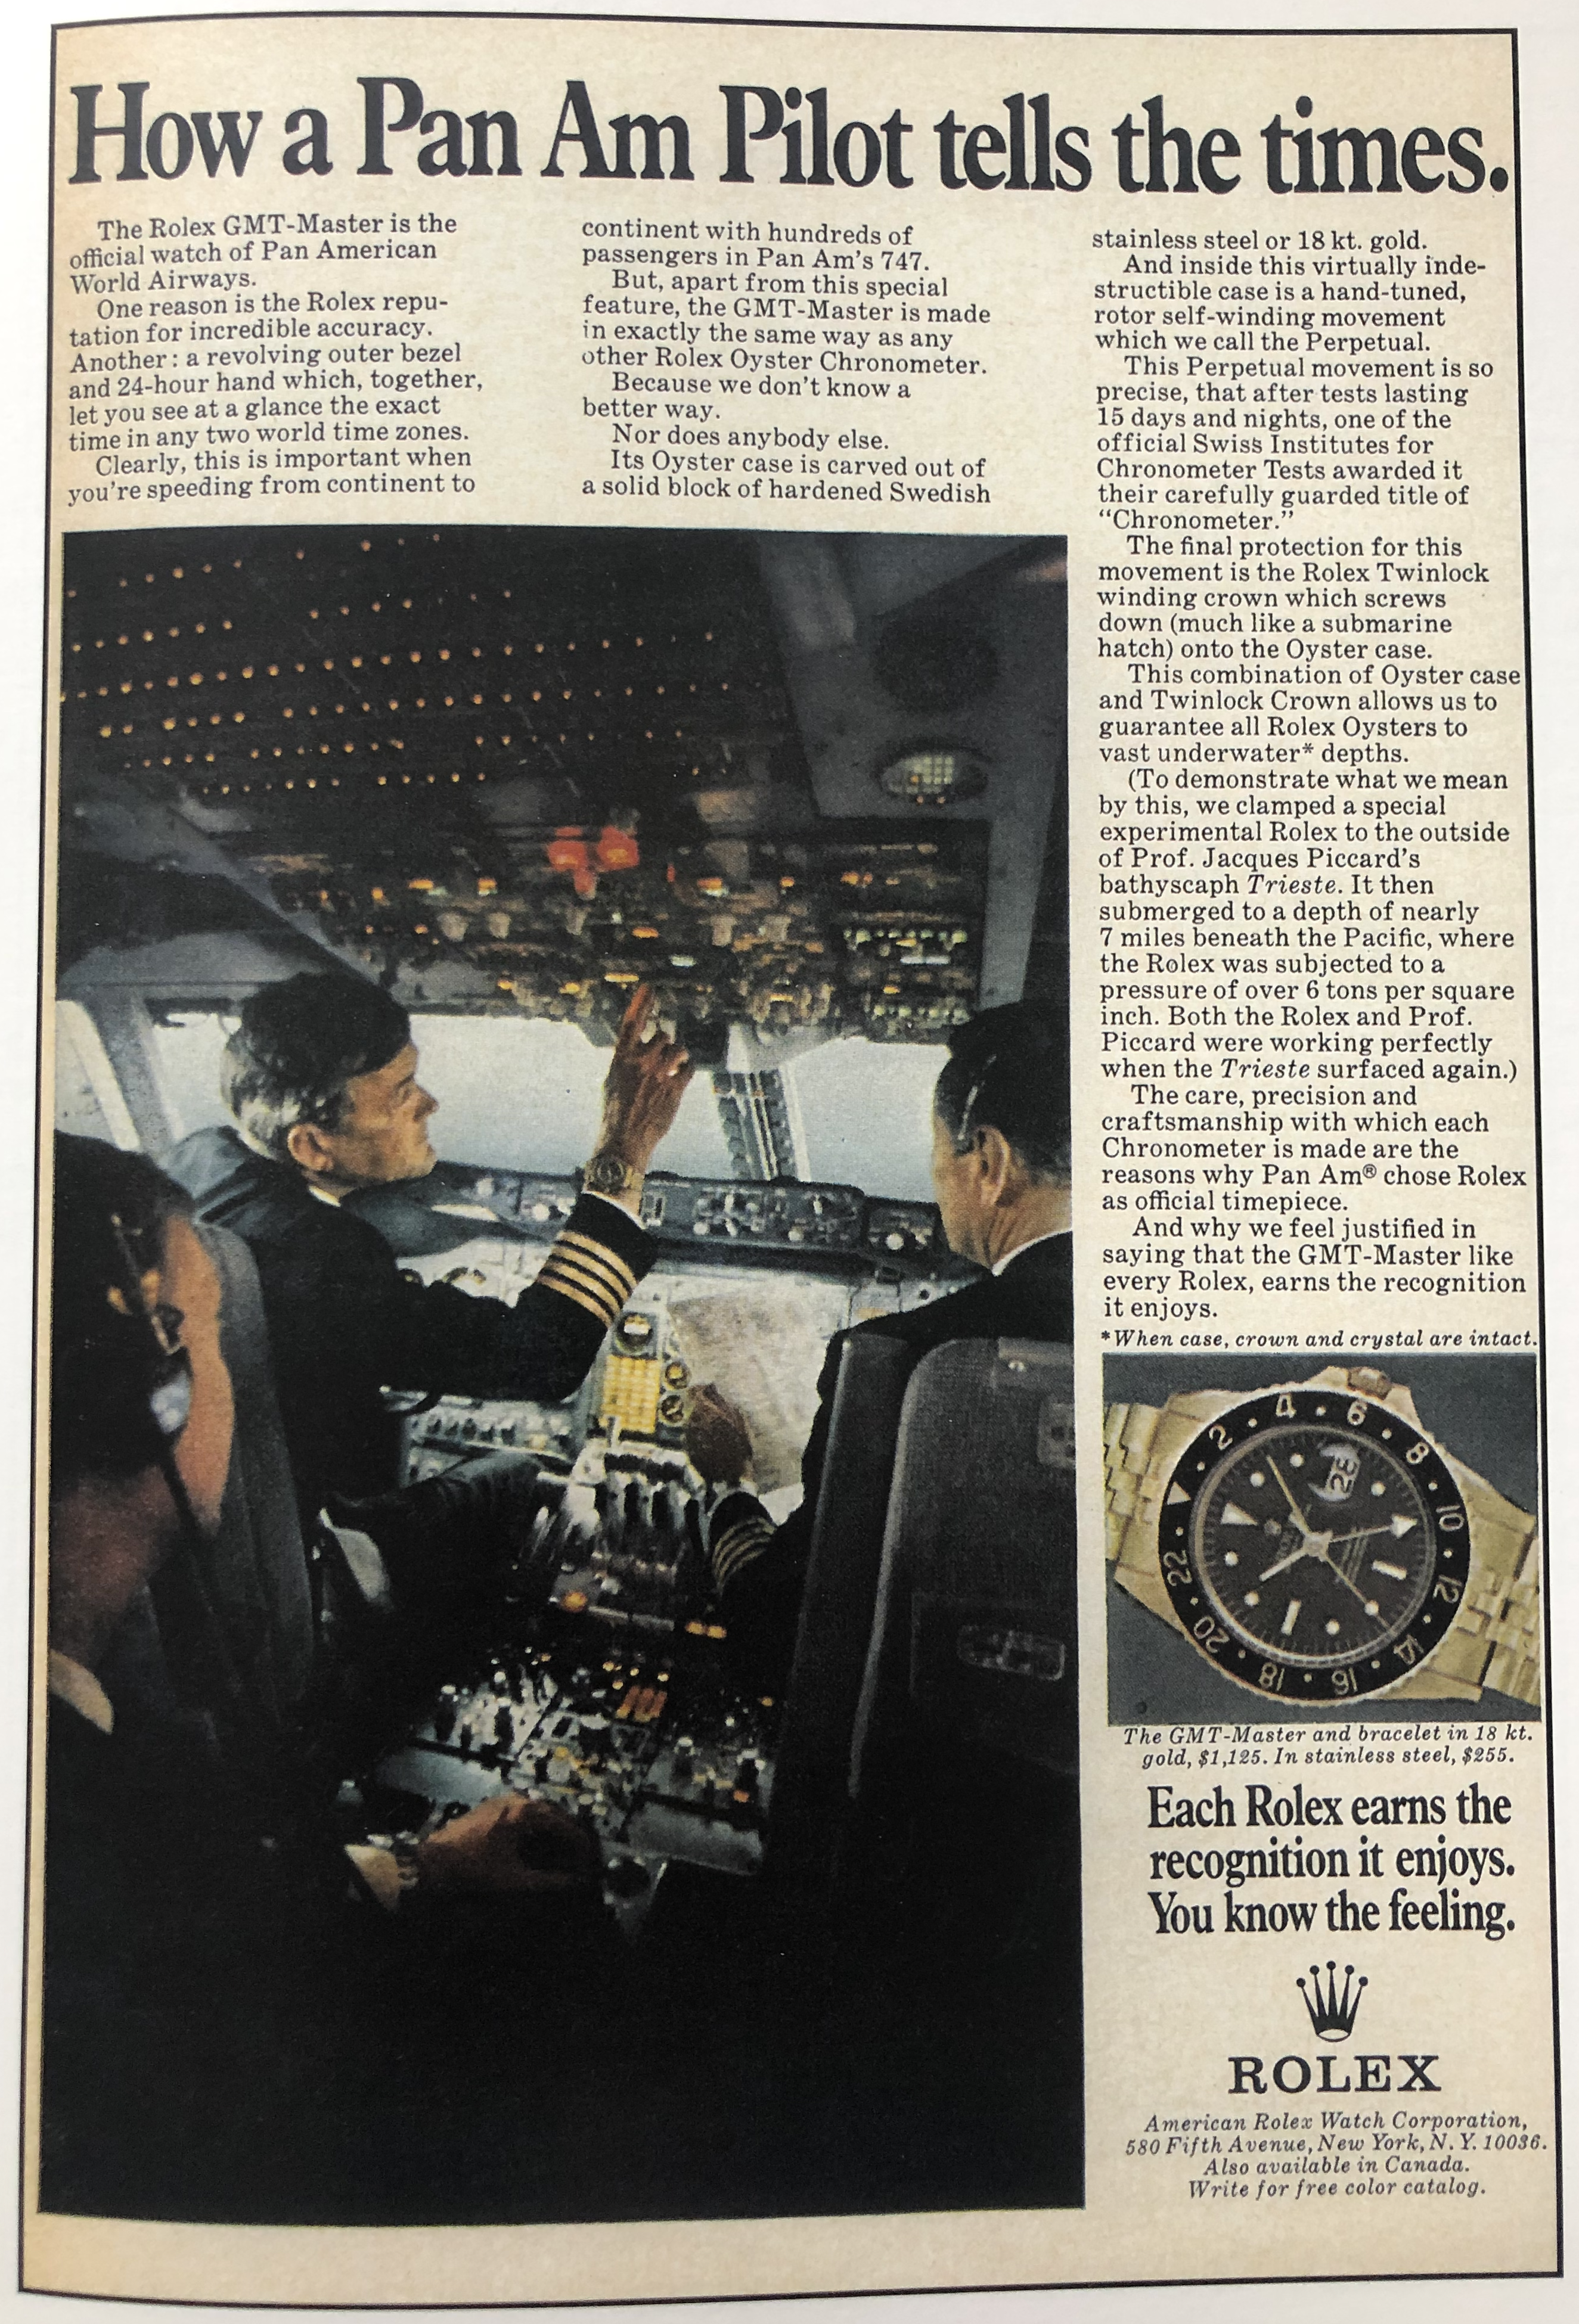 Ad featuring the 747 and the 6542